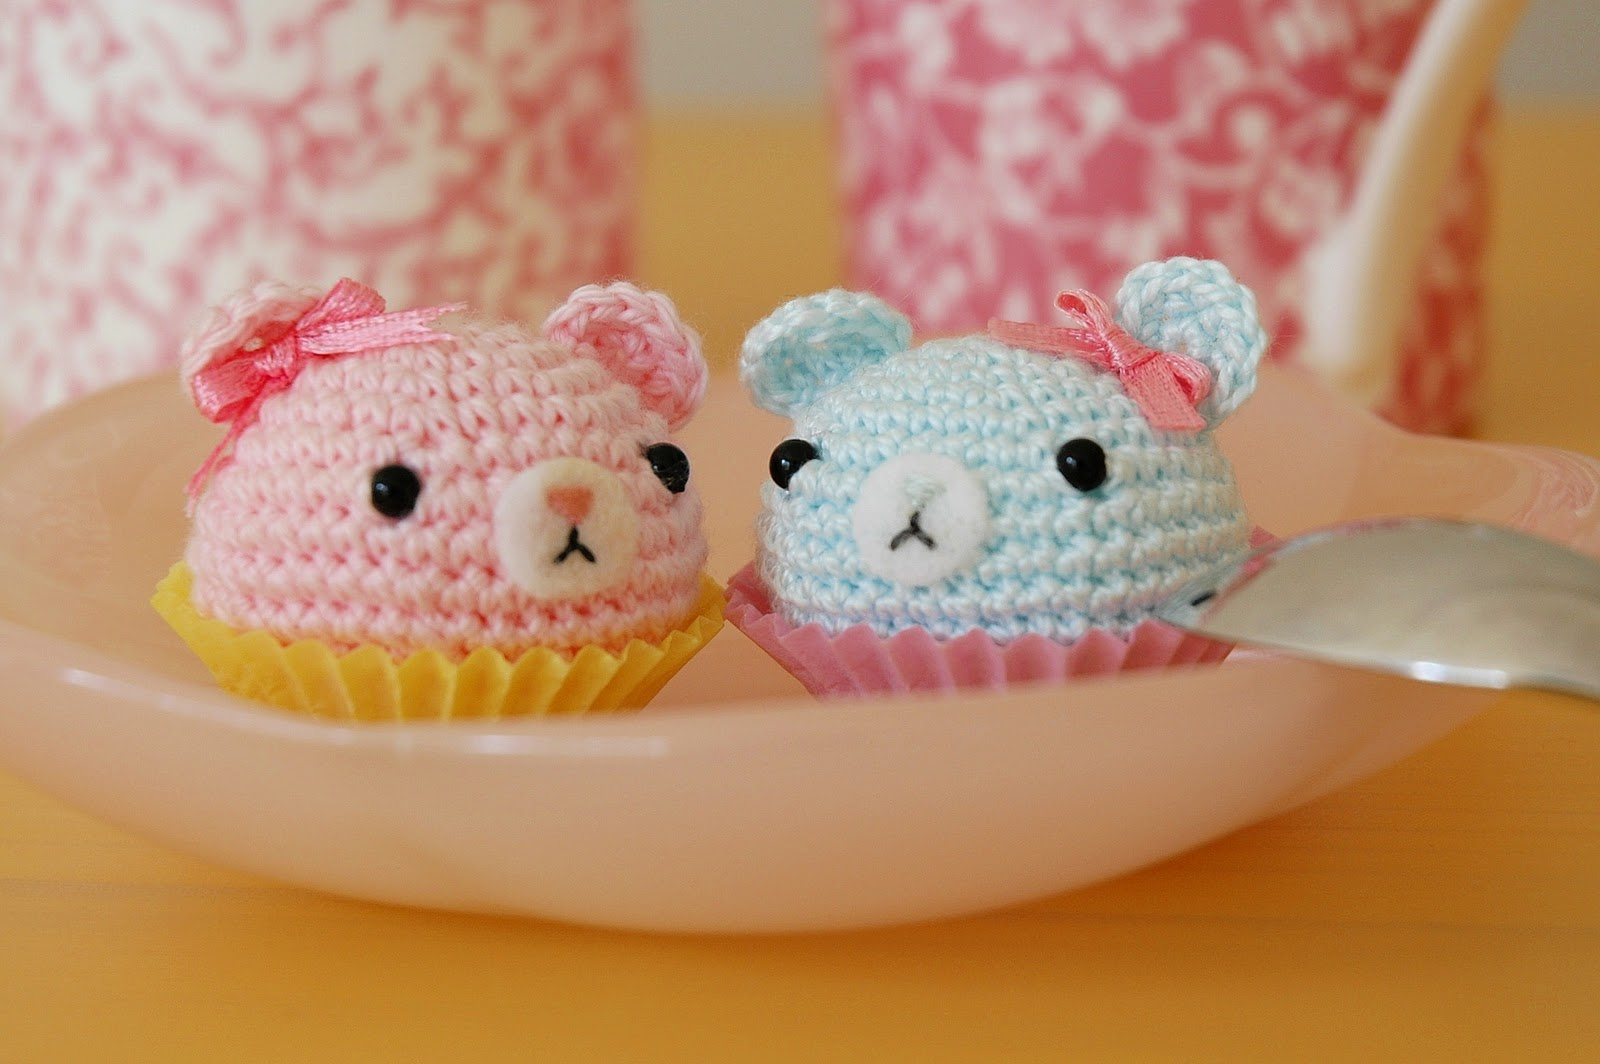 stuff susie made: Tiny amigurumi cupcakes